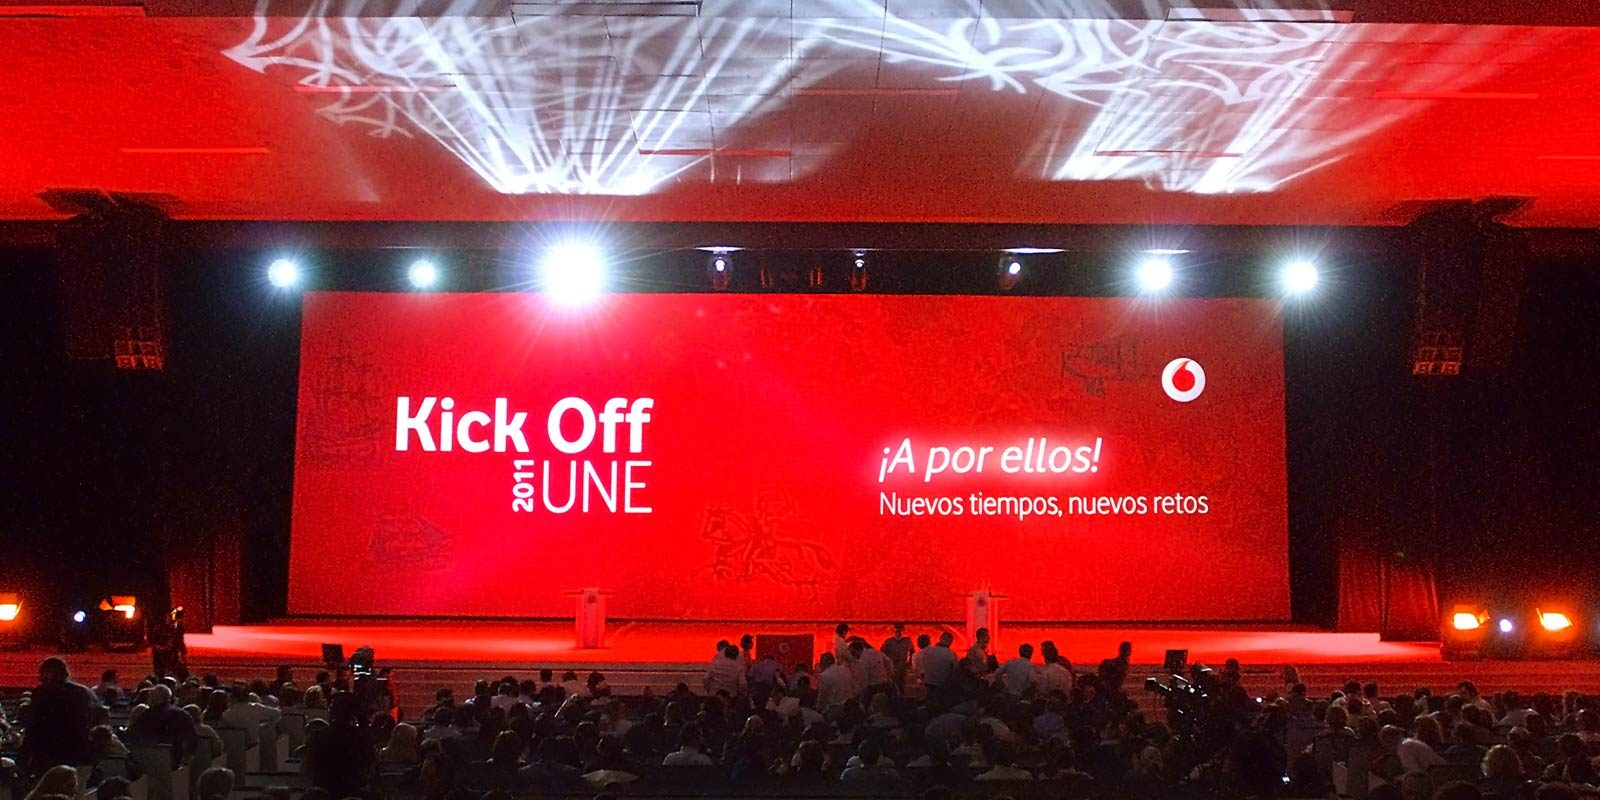 KICK OFF UNE VODAFONE